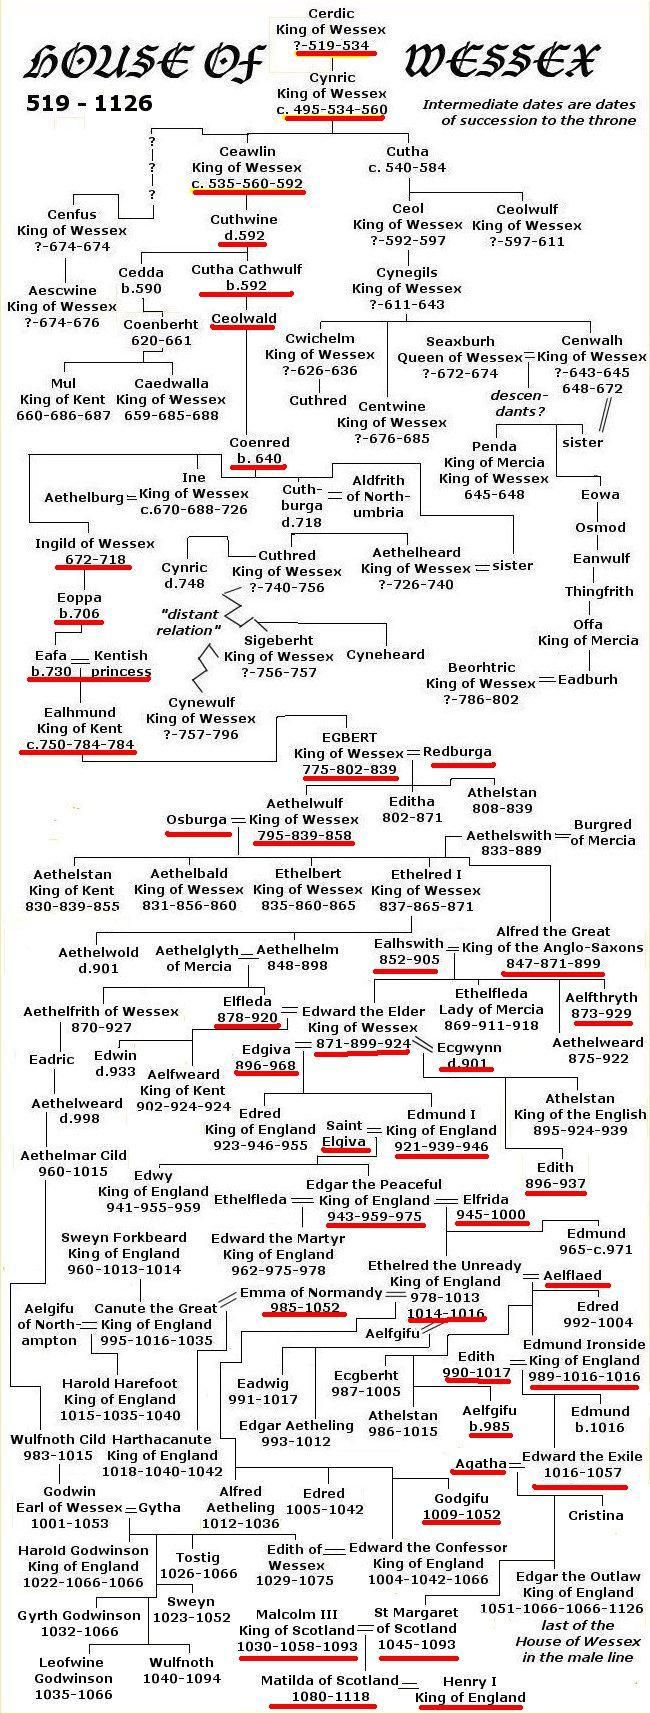 best ideas about royal family trees royal the house of wessex of which the british royal line is decendened cedric is the farthest